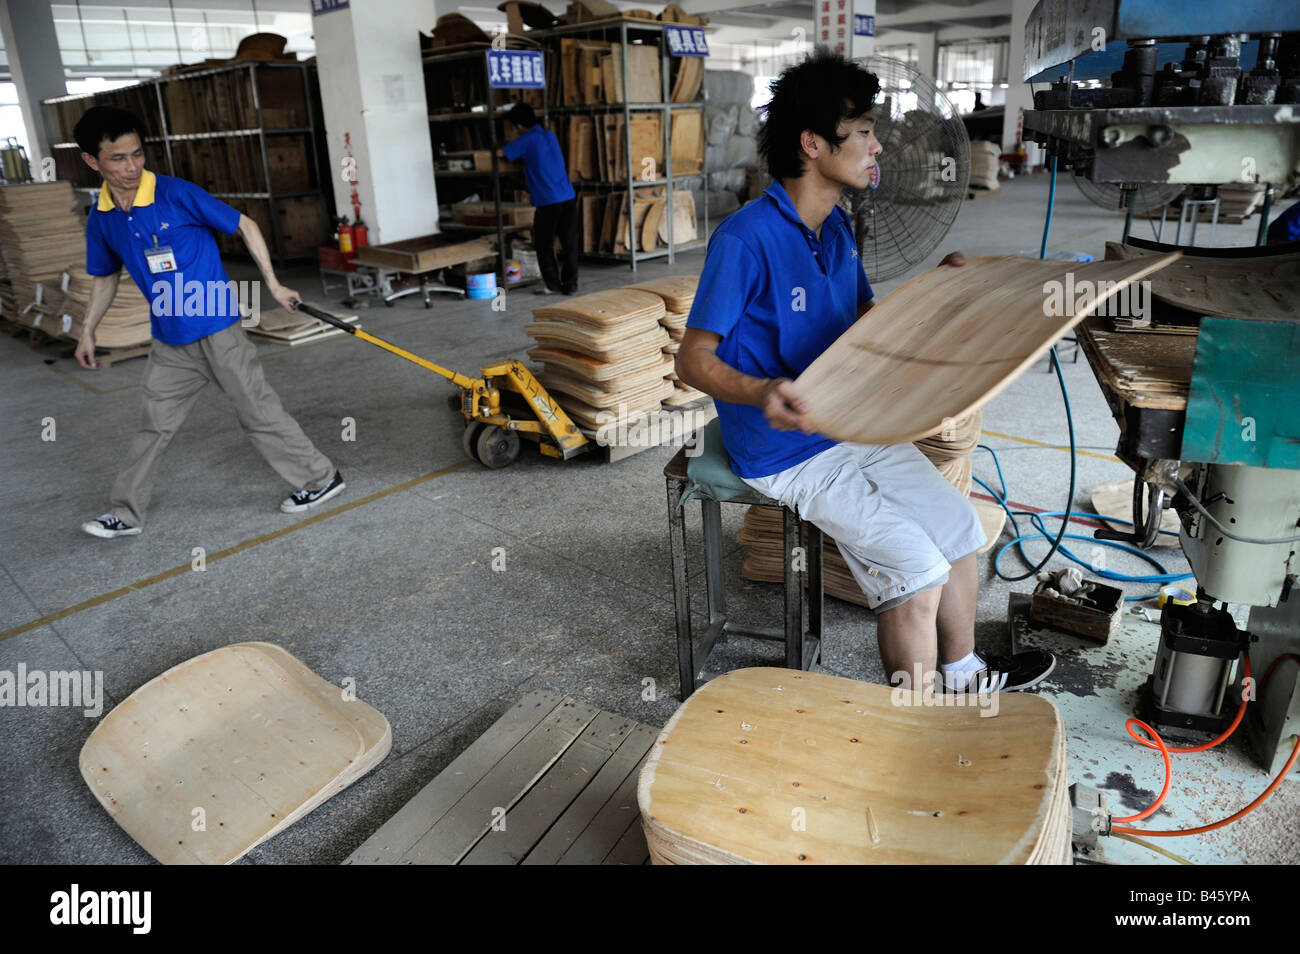 A furniture factory in huizhou guangdong china 21 sep 2008